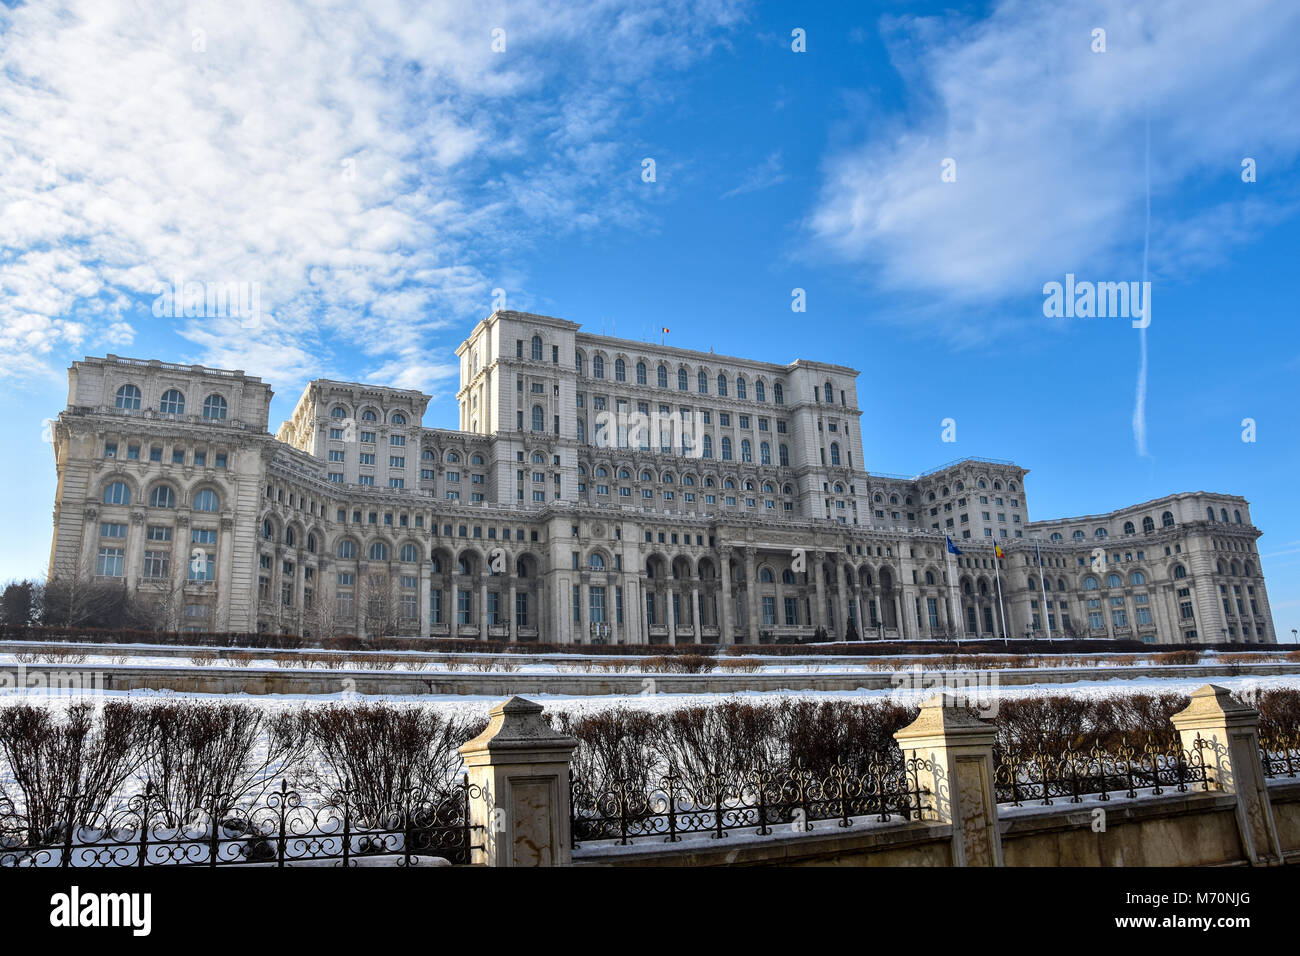 Palace of the Parliament (Palatul Parlamentului din Romania) also known as People's House (Casa Poporului) Bucharest, Stock Photo